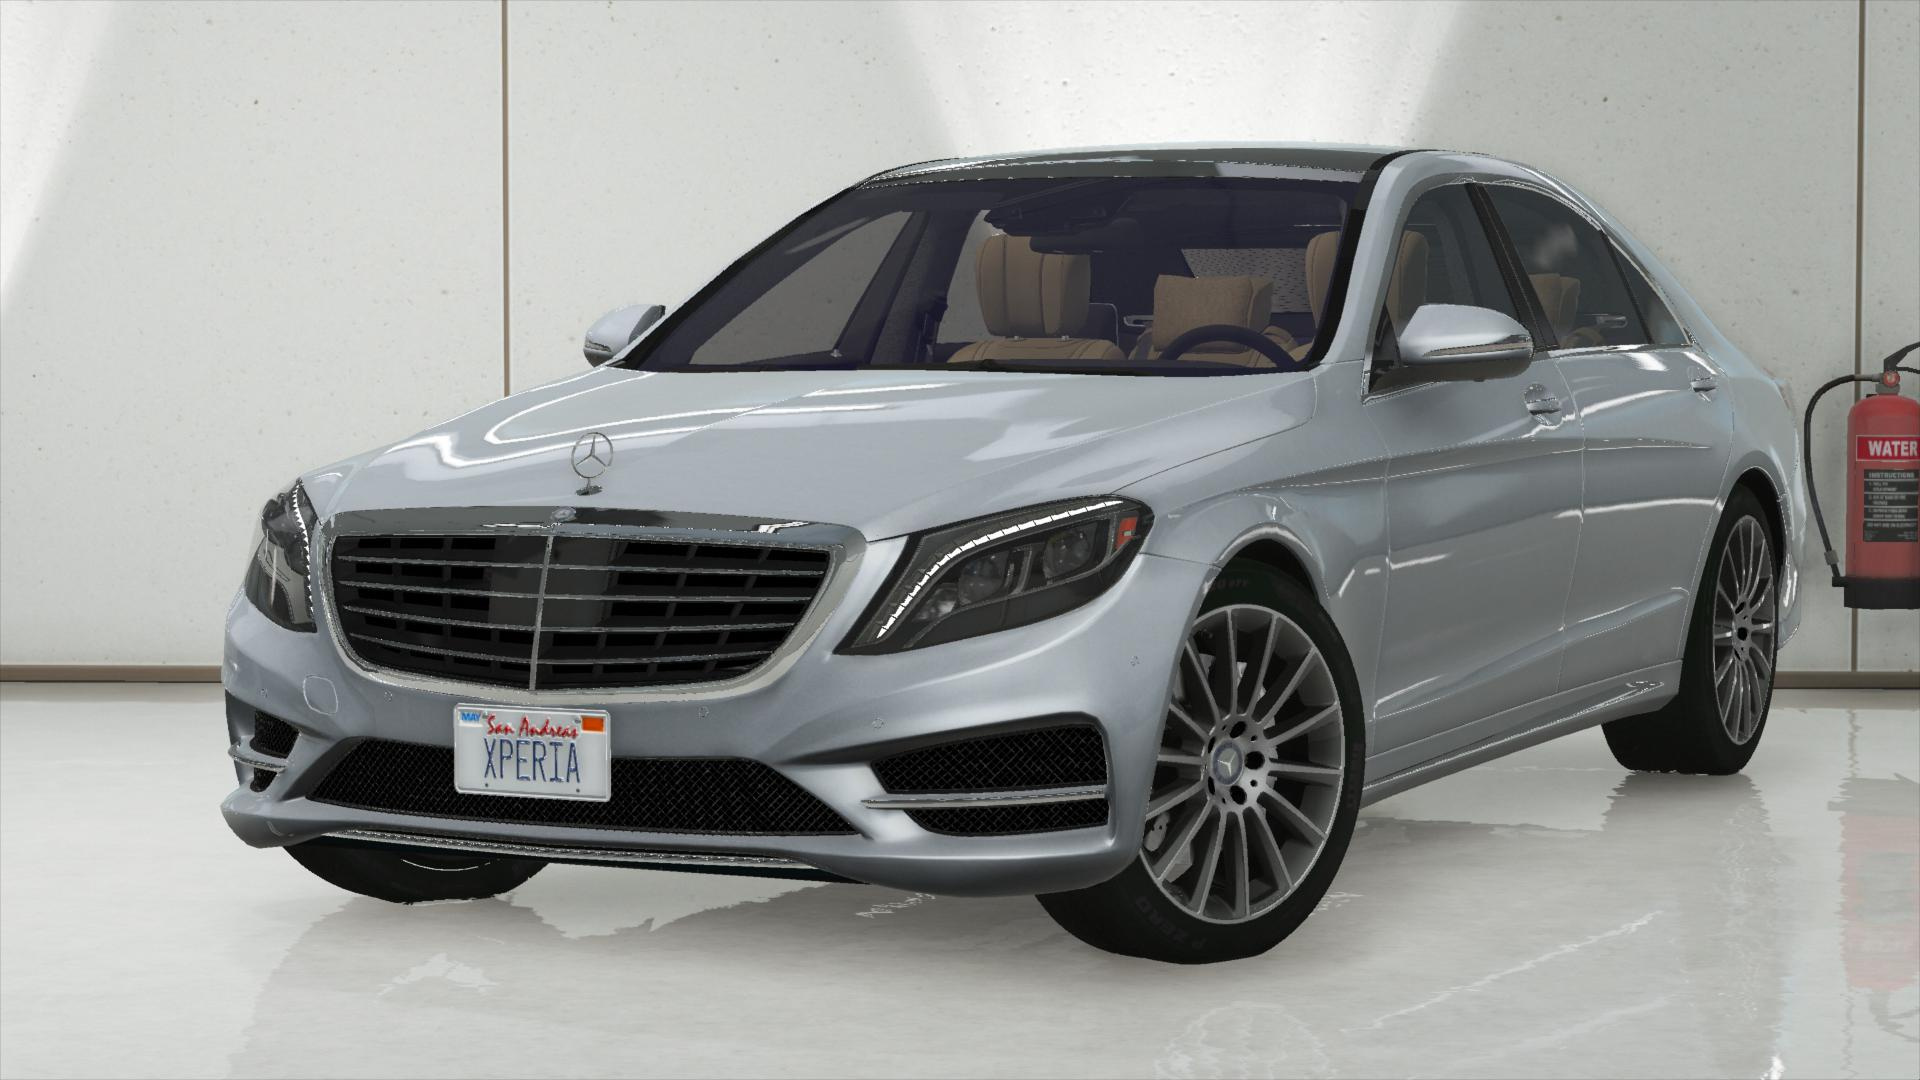 2014 mercedes benz s500 l s550 4matic w222 add on tuning gta5. Black Bedroom Furniture Sets. Home Design Ideas